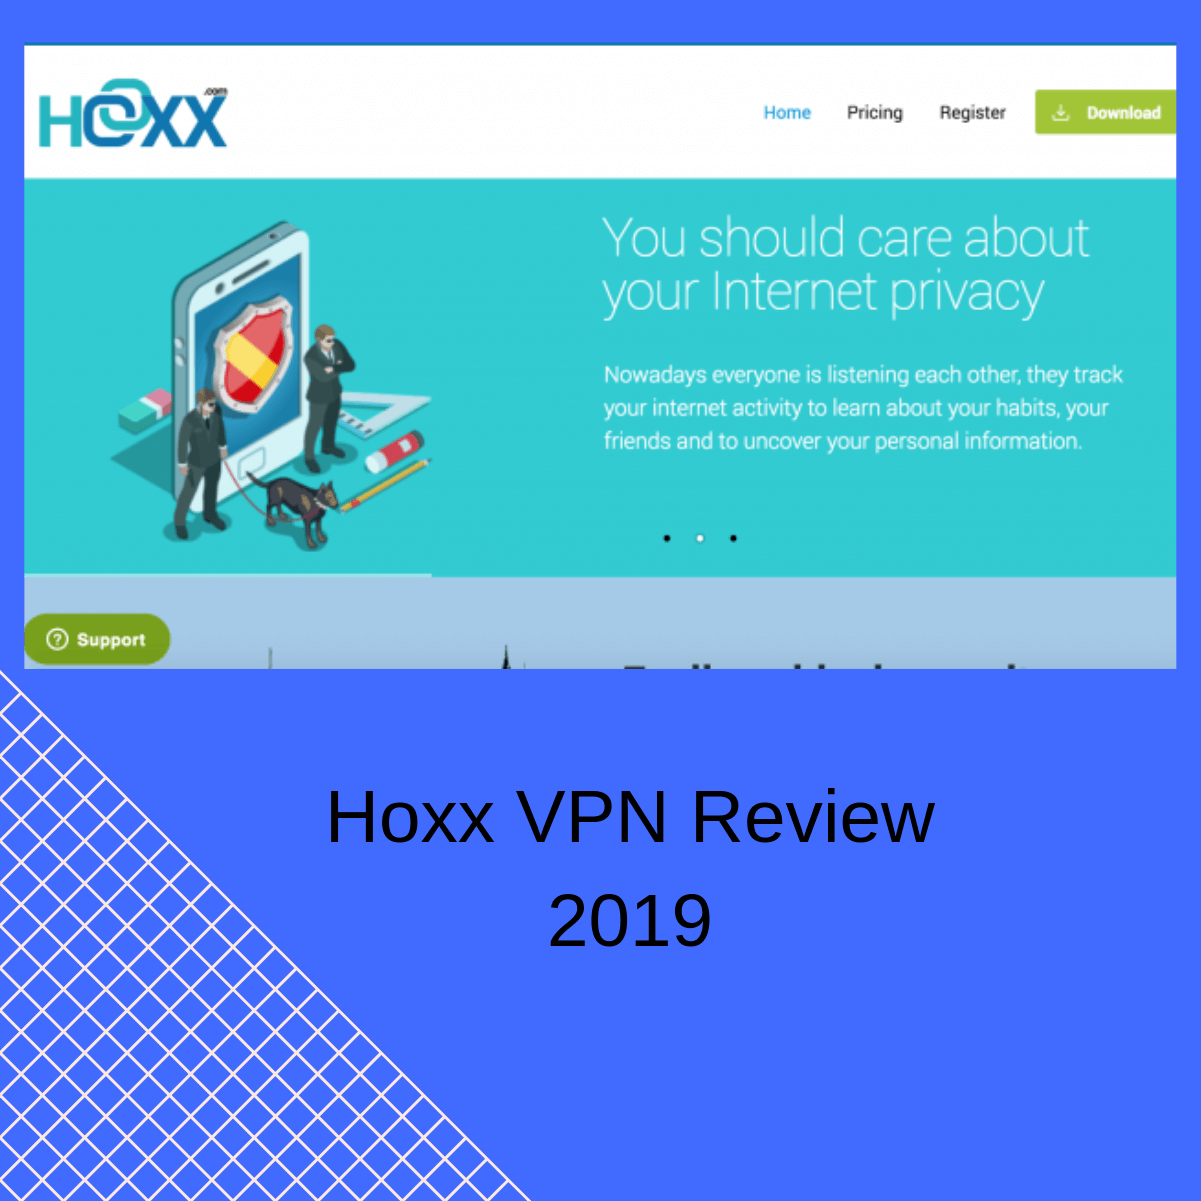 Hoxx VPN Review 2019 - Is this VPN a Hoax? Find Out!